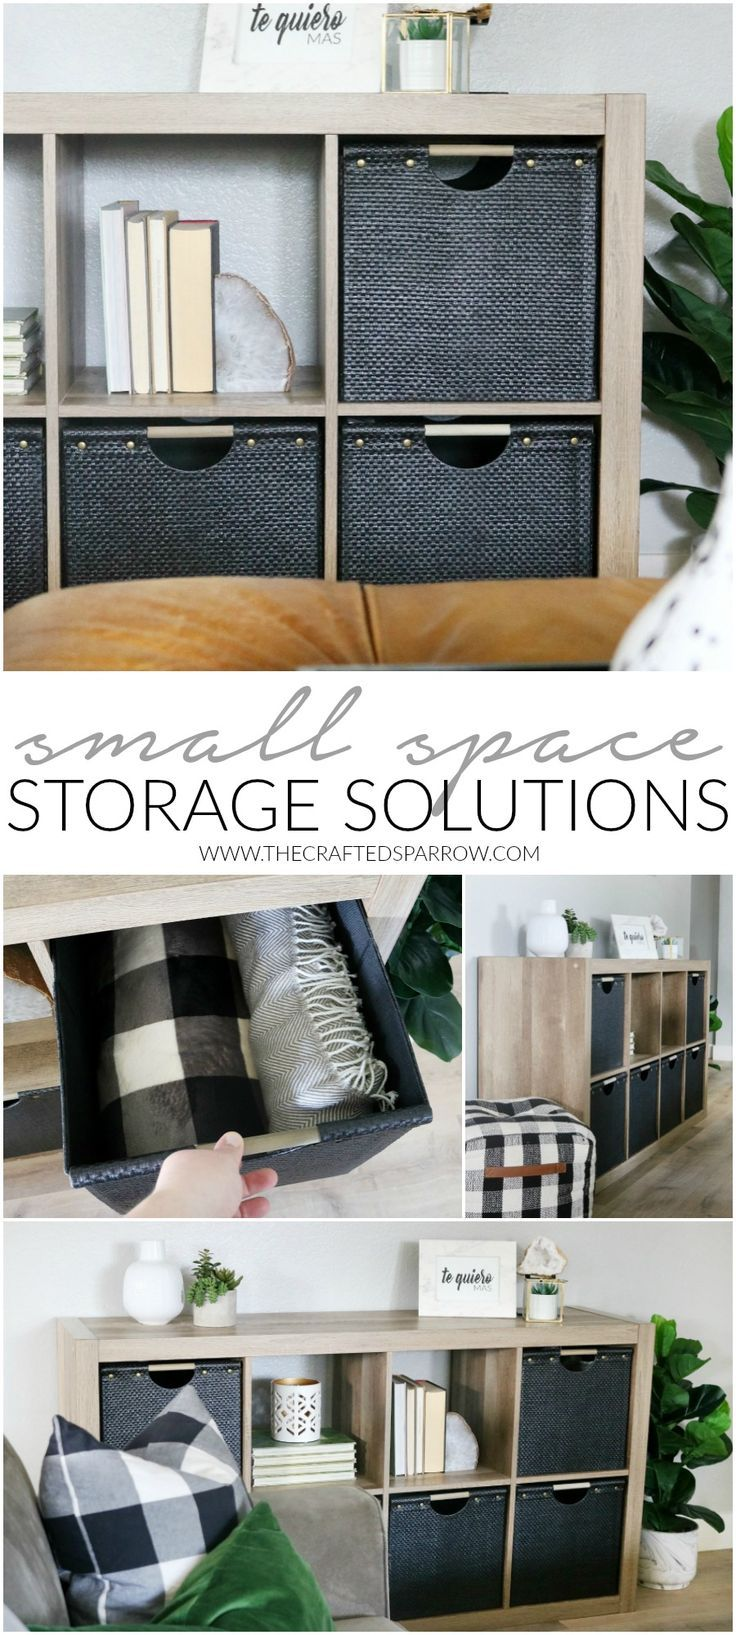 Small Space Storage Solutions | #BHGLiveBetter #ad #Storage #organization